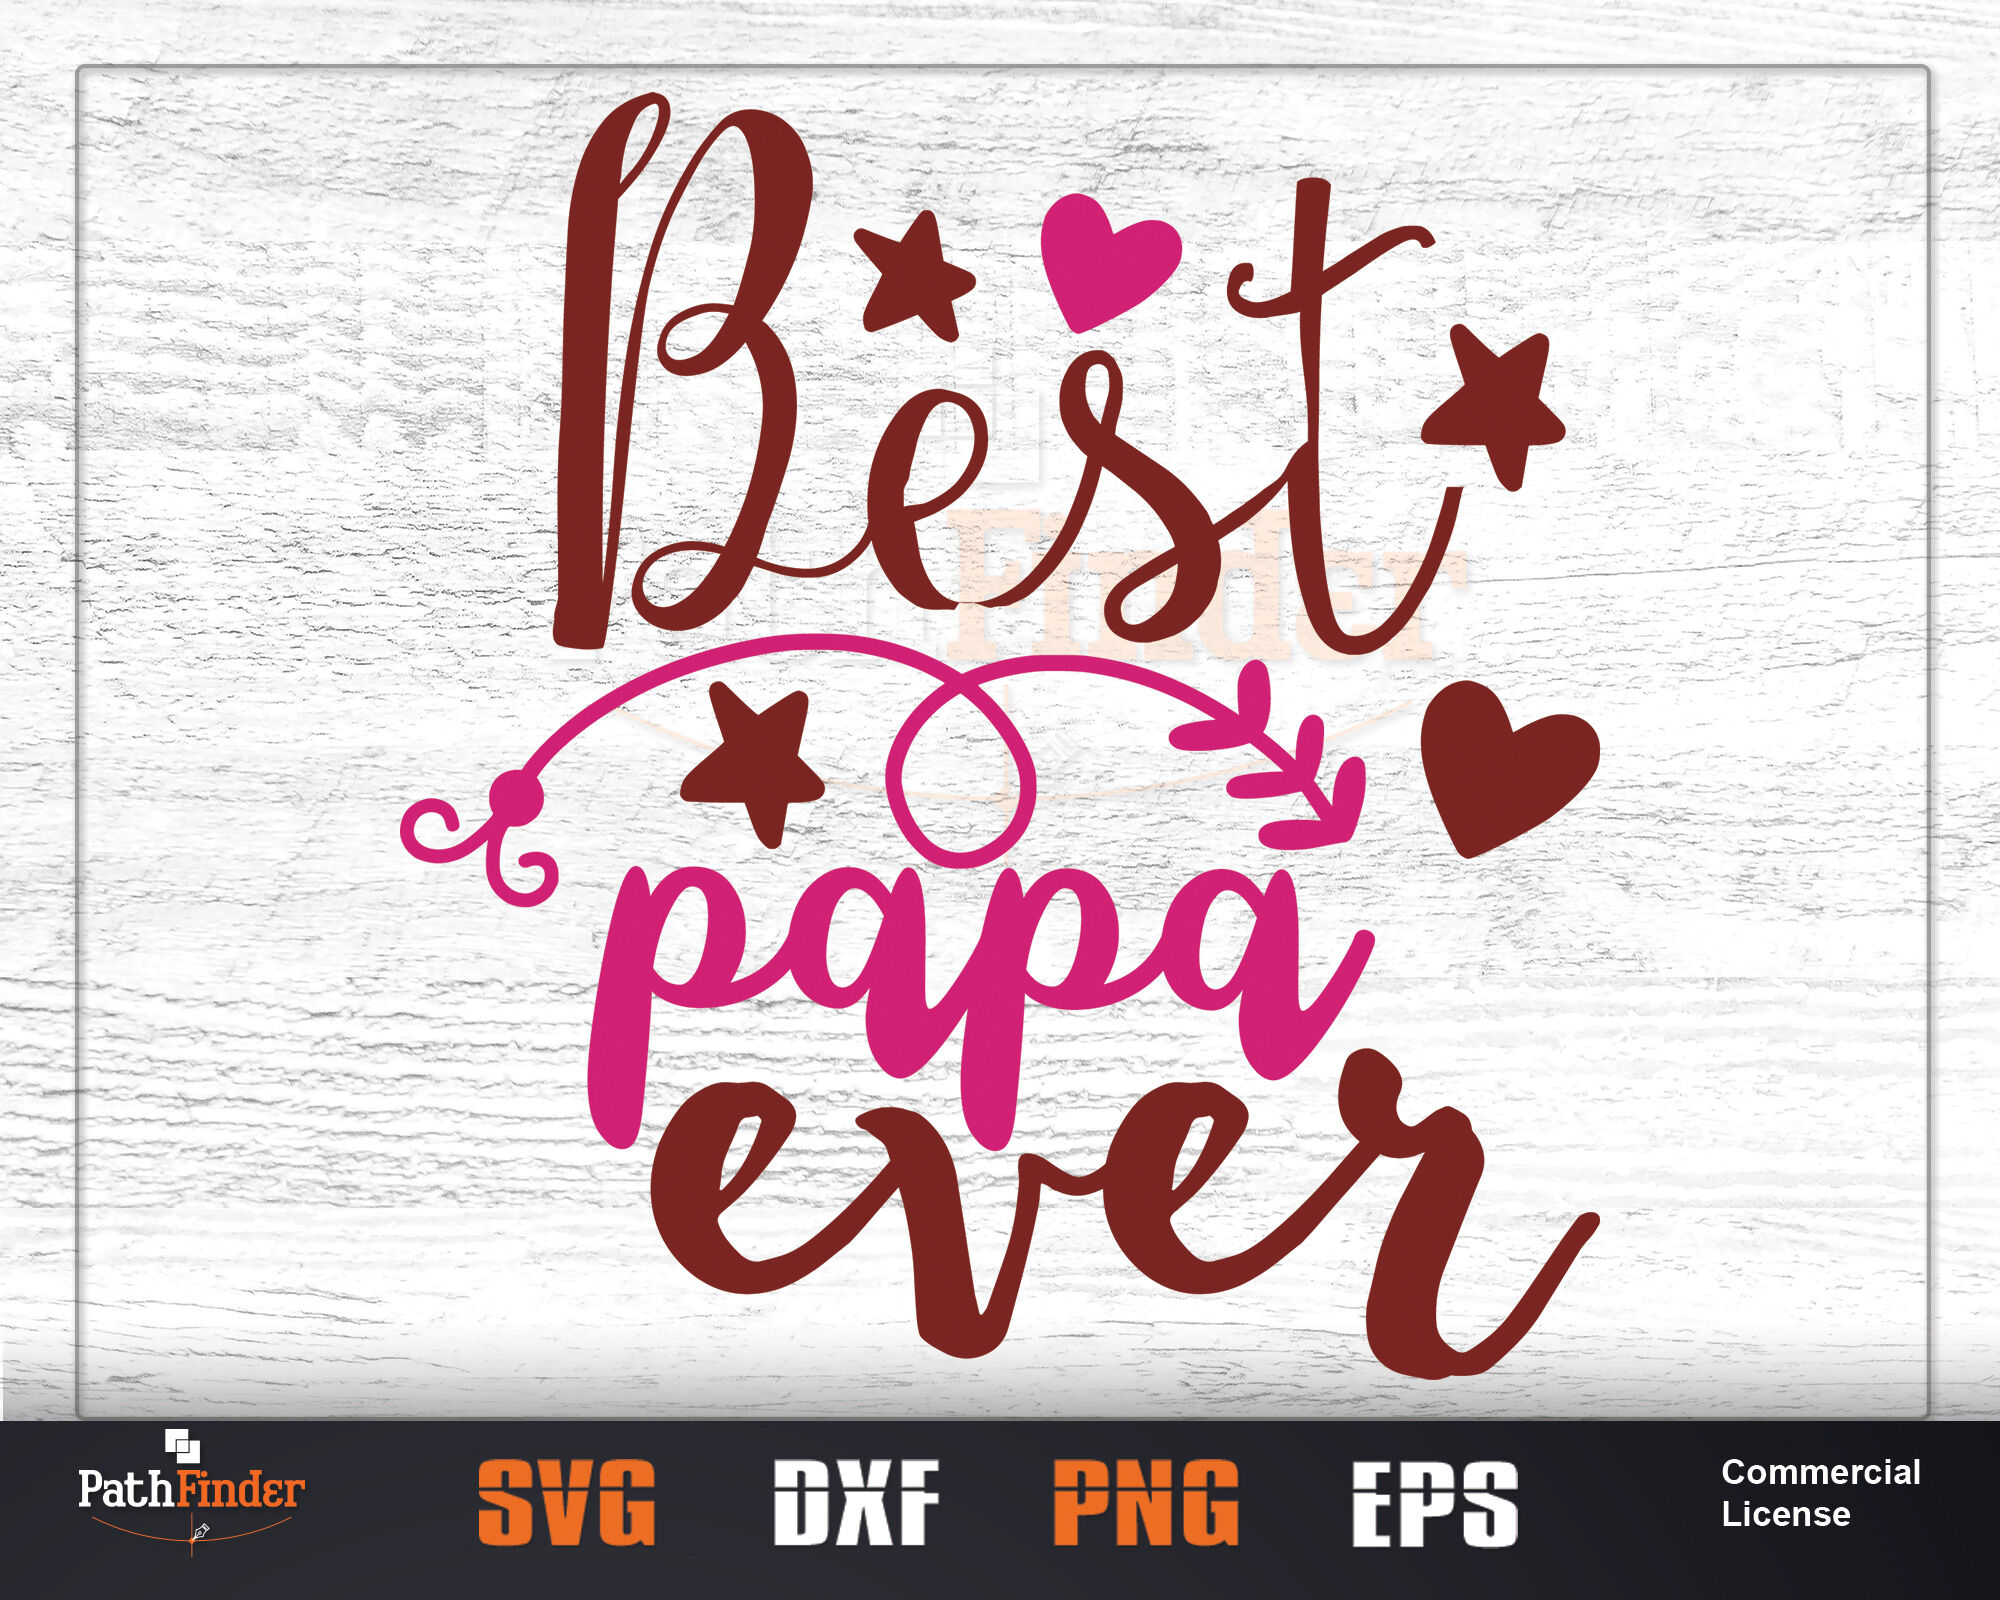 Best Papa Ever Best Dad Ever Dad Svg Best Daddy Ever Daddy Svg